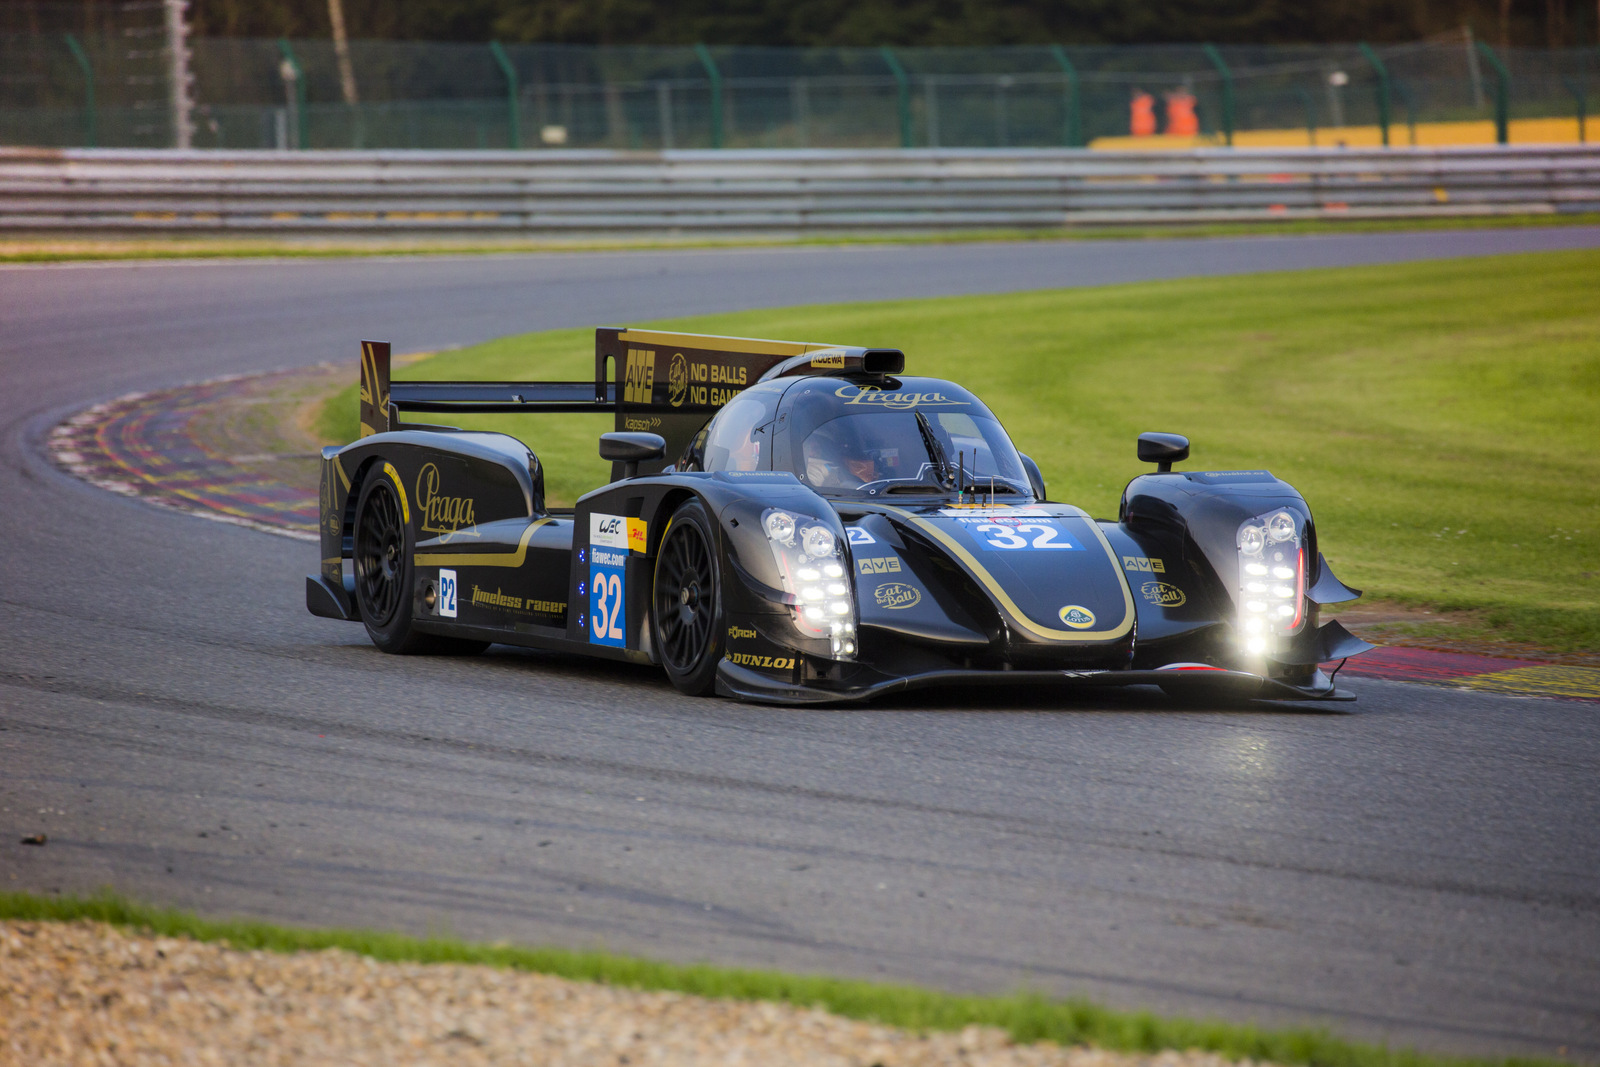 Lotus Praga Team gears up for 24H Le Mans